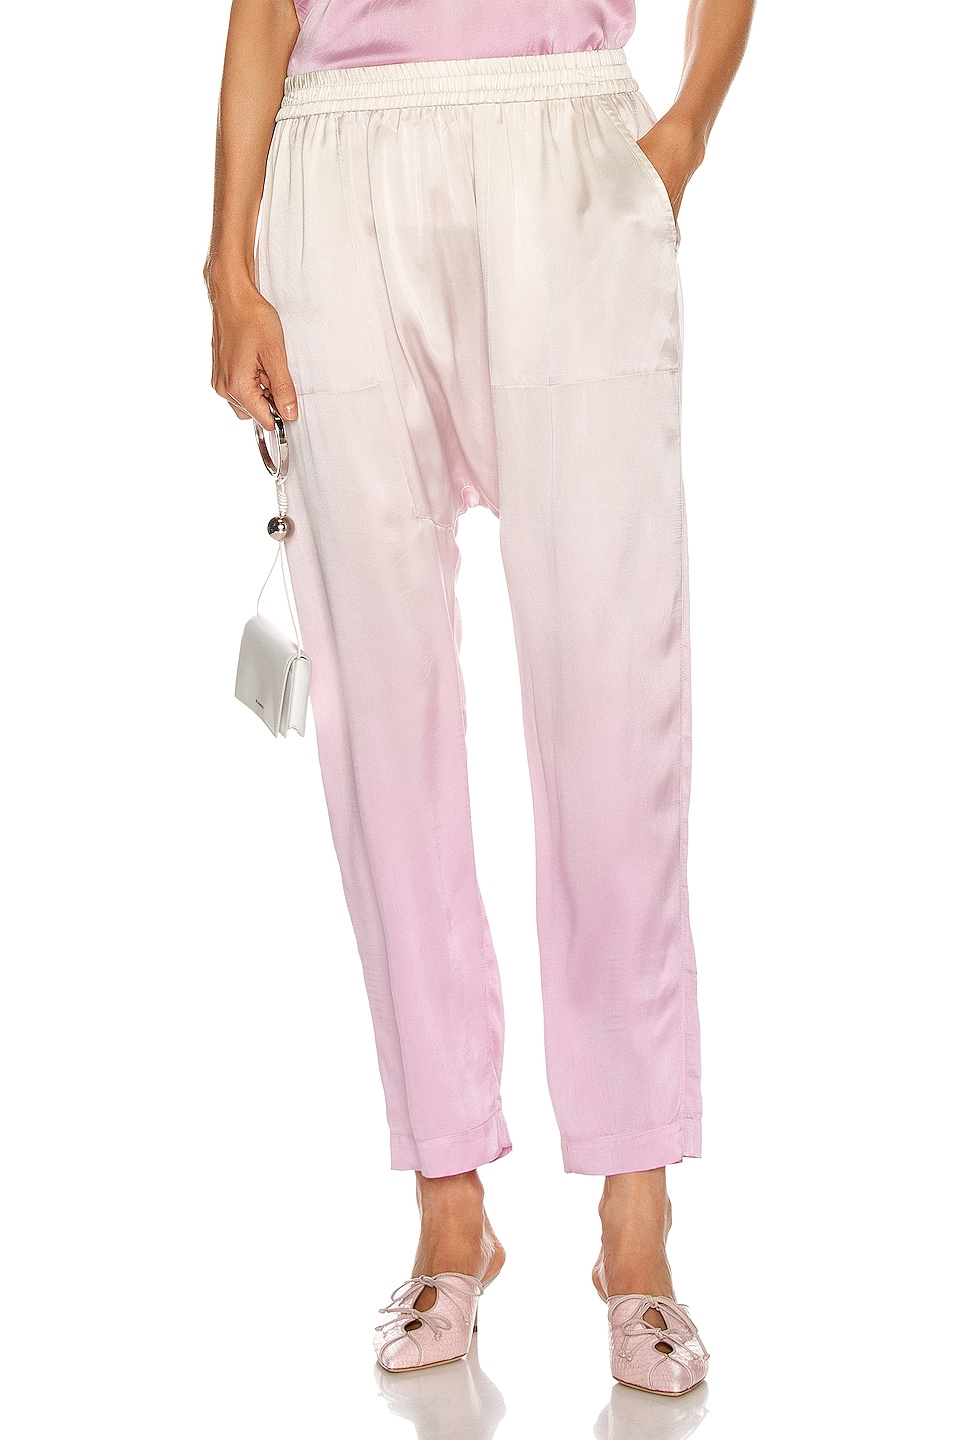 Image 1 of Raquel Allegra Sunday Pant in Orchid Tie Dye